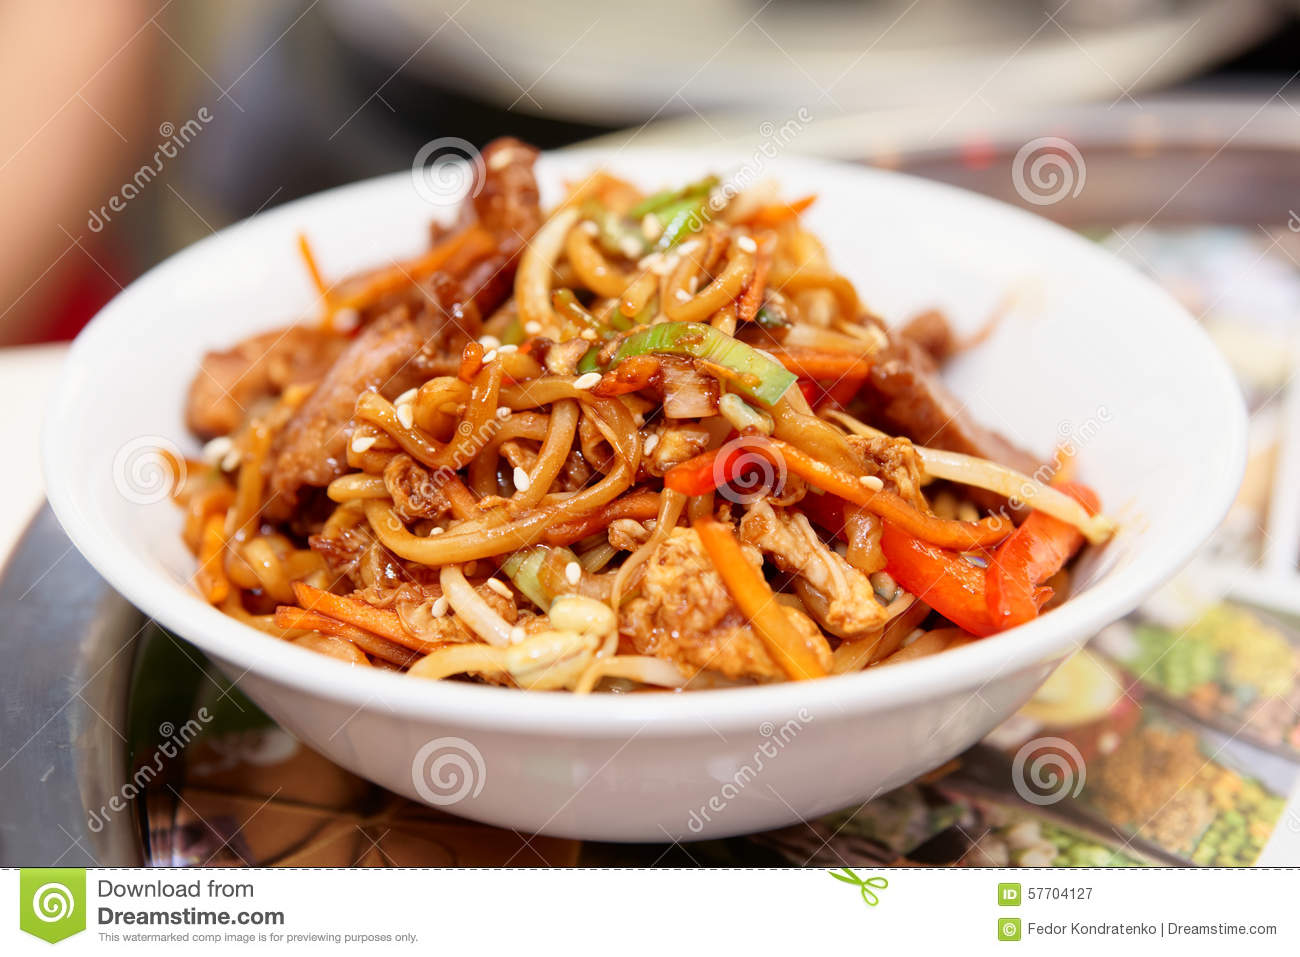 Noodles cooked in wok asian food stock image image of for Cuisine wok